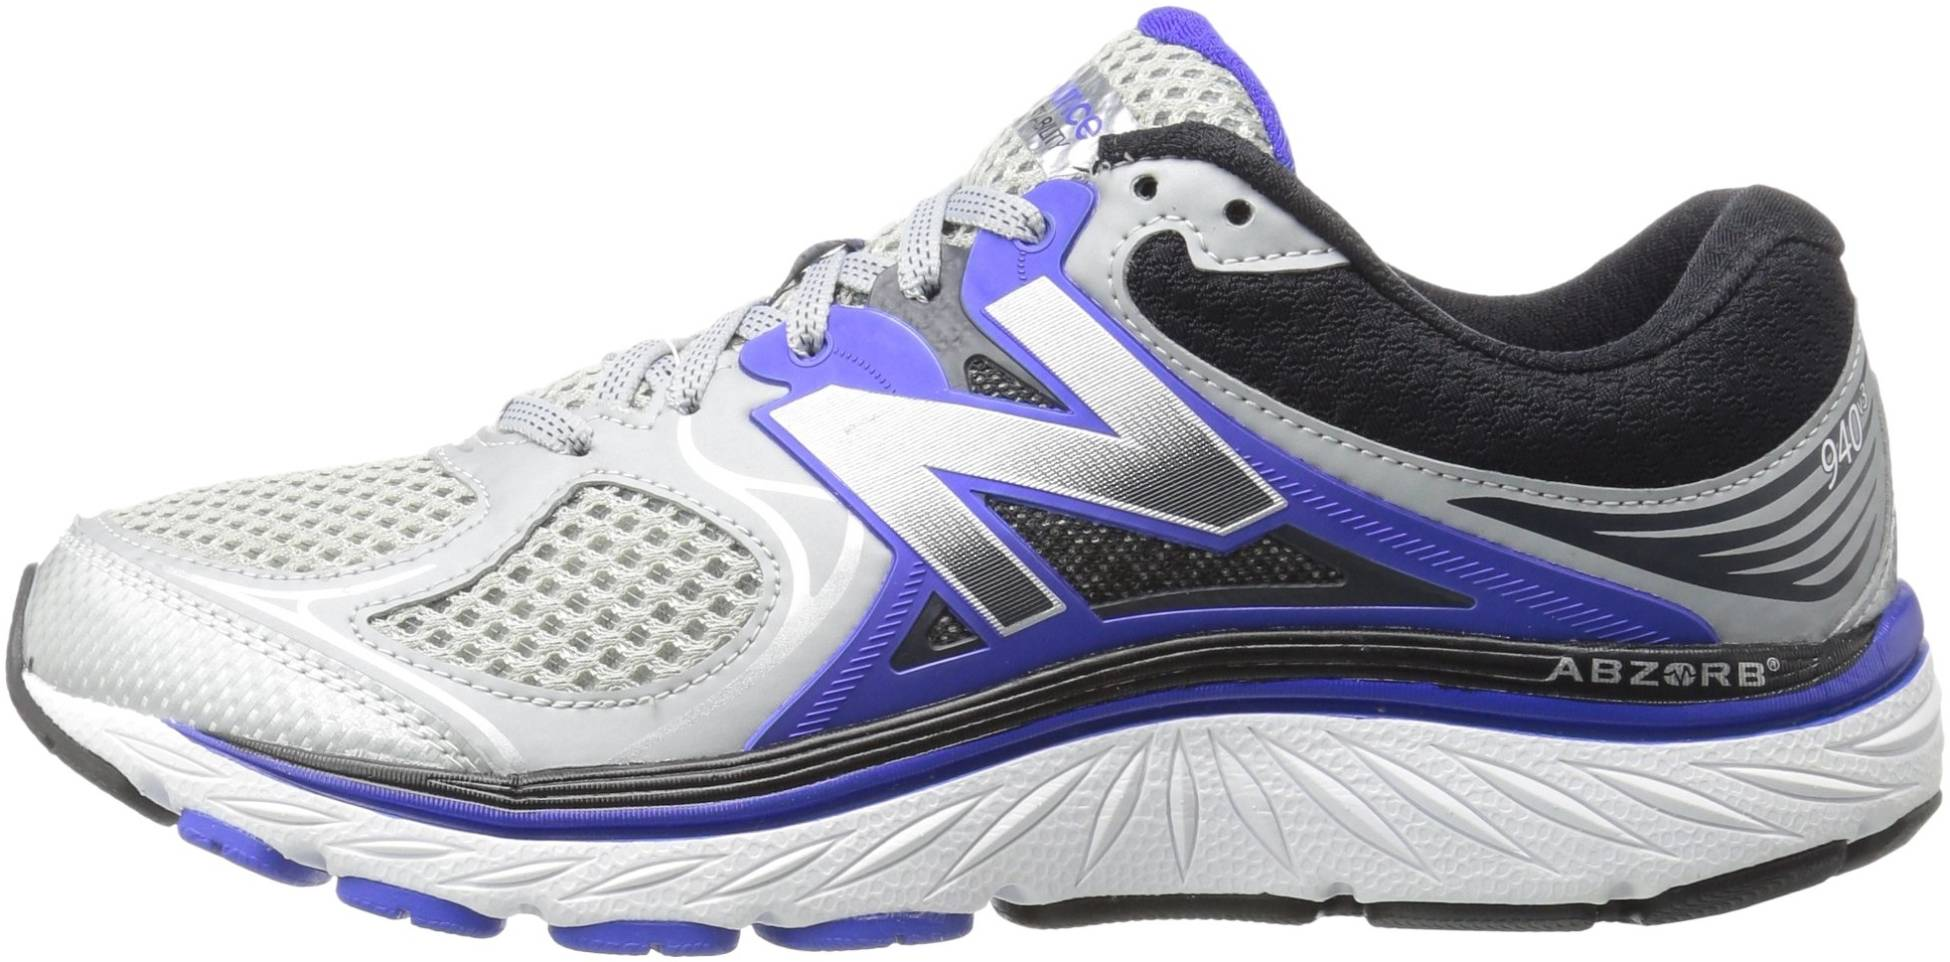 Review of New Balance 940 v3